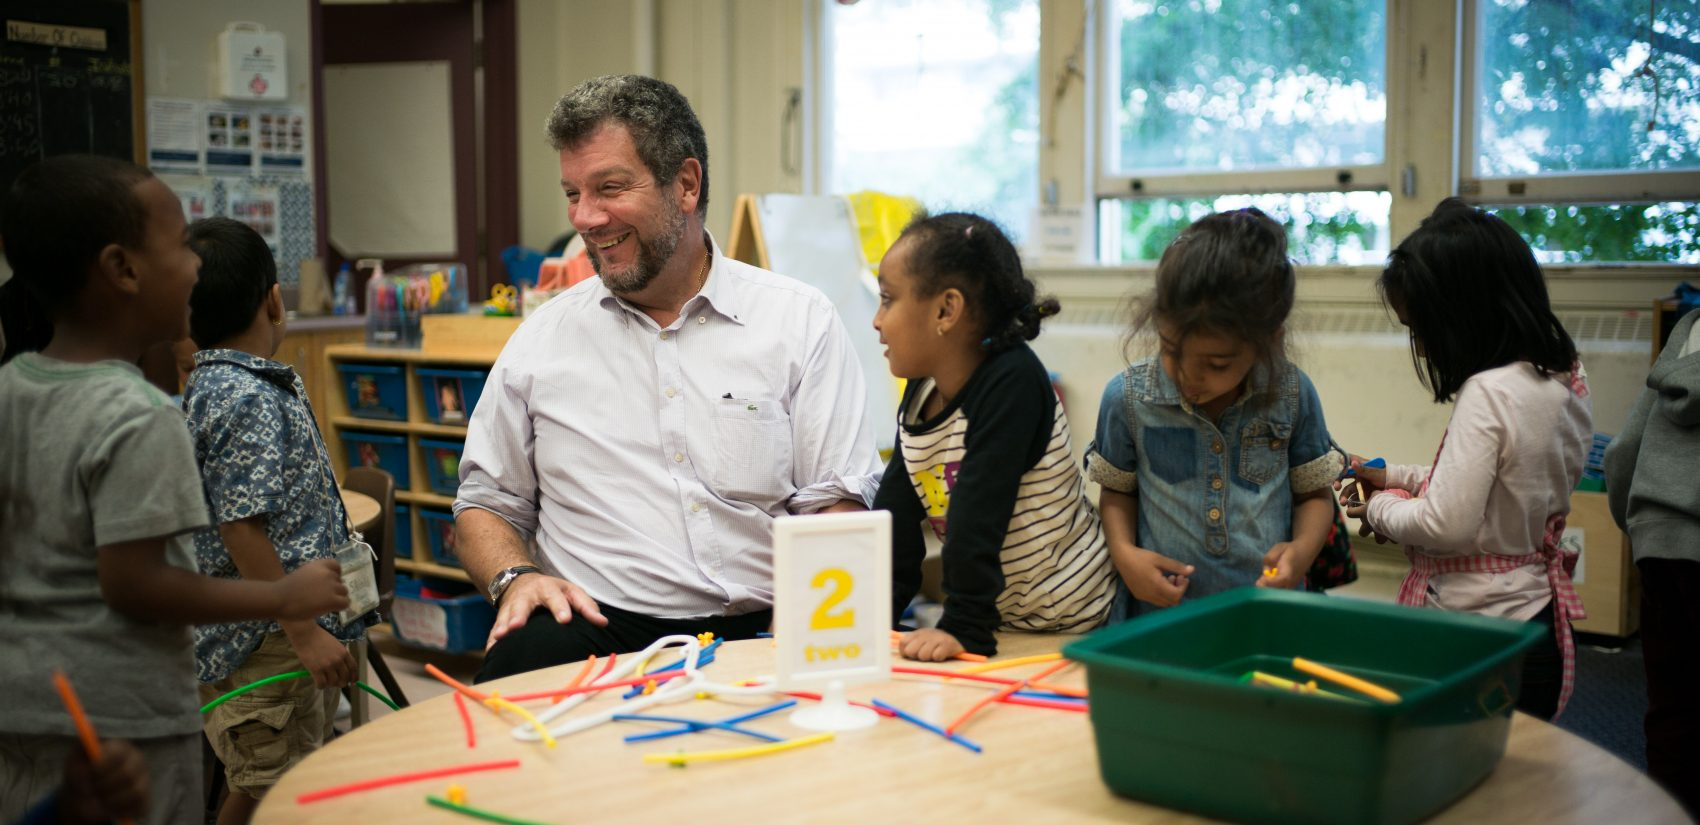 Principal David Crichton, with students at Rose Avenue Public School in Toronto, Ontario, Canada. (Ian Willms/For Keystone Crossroads)